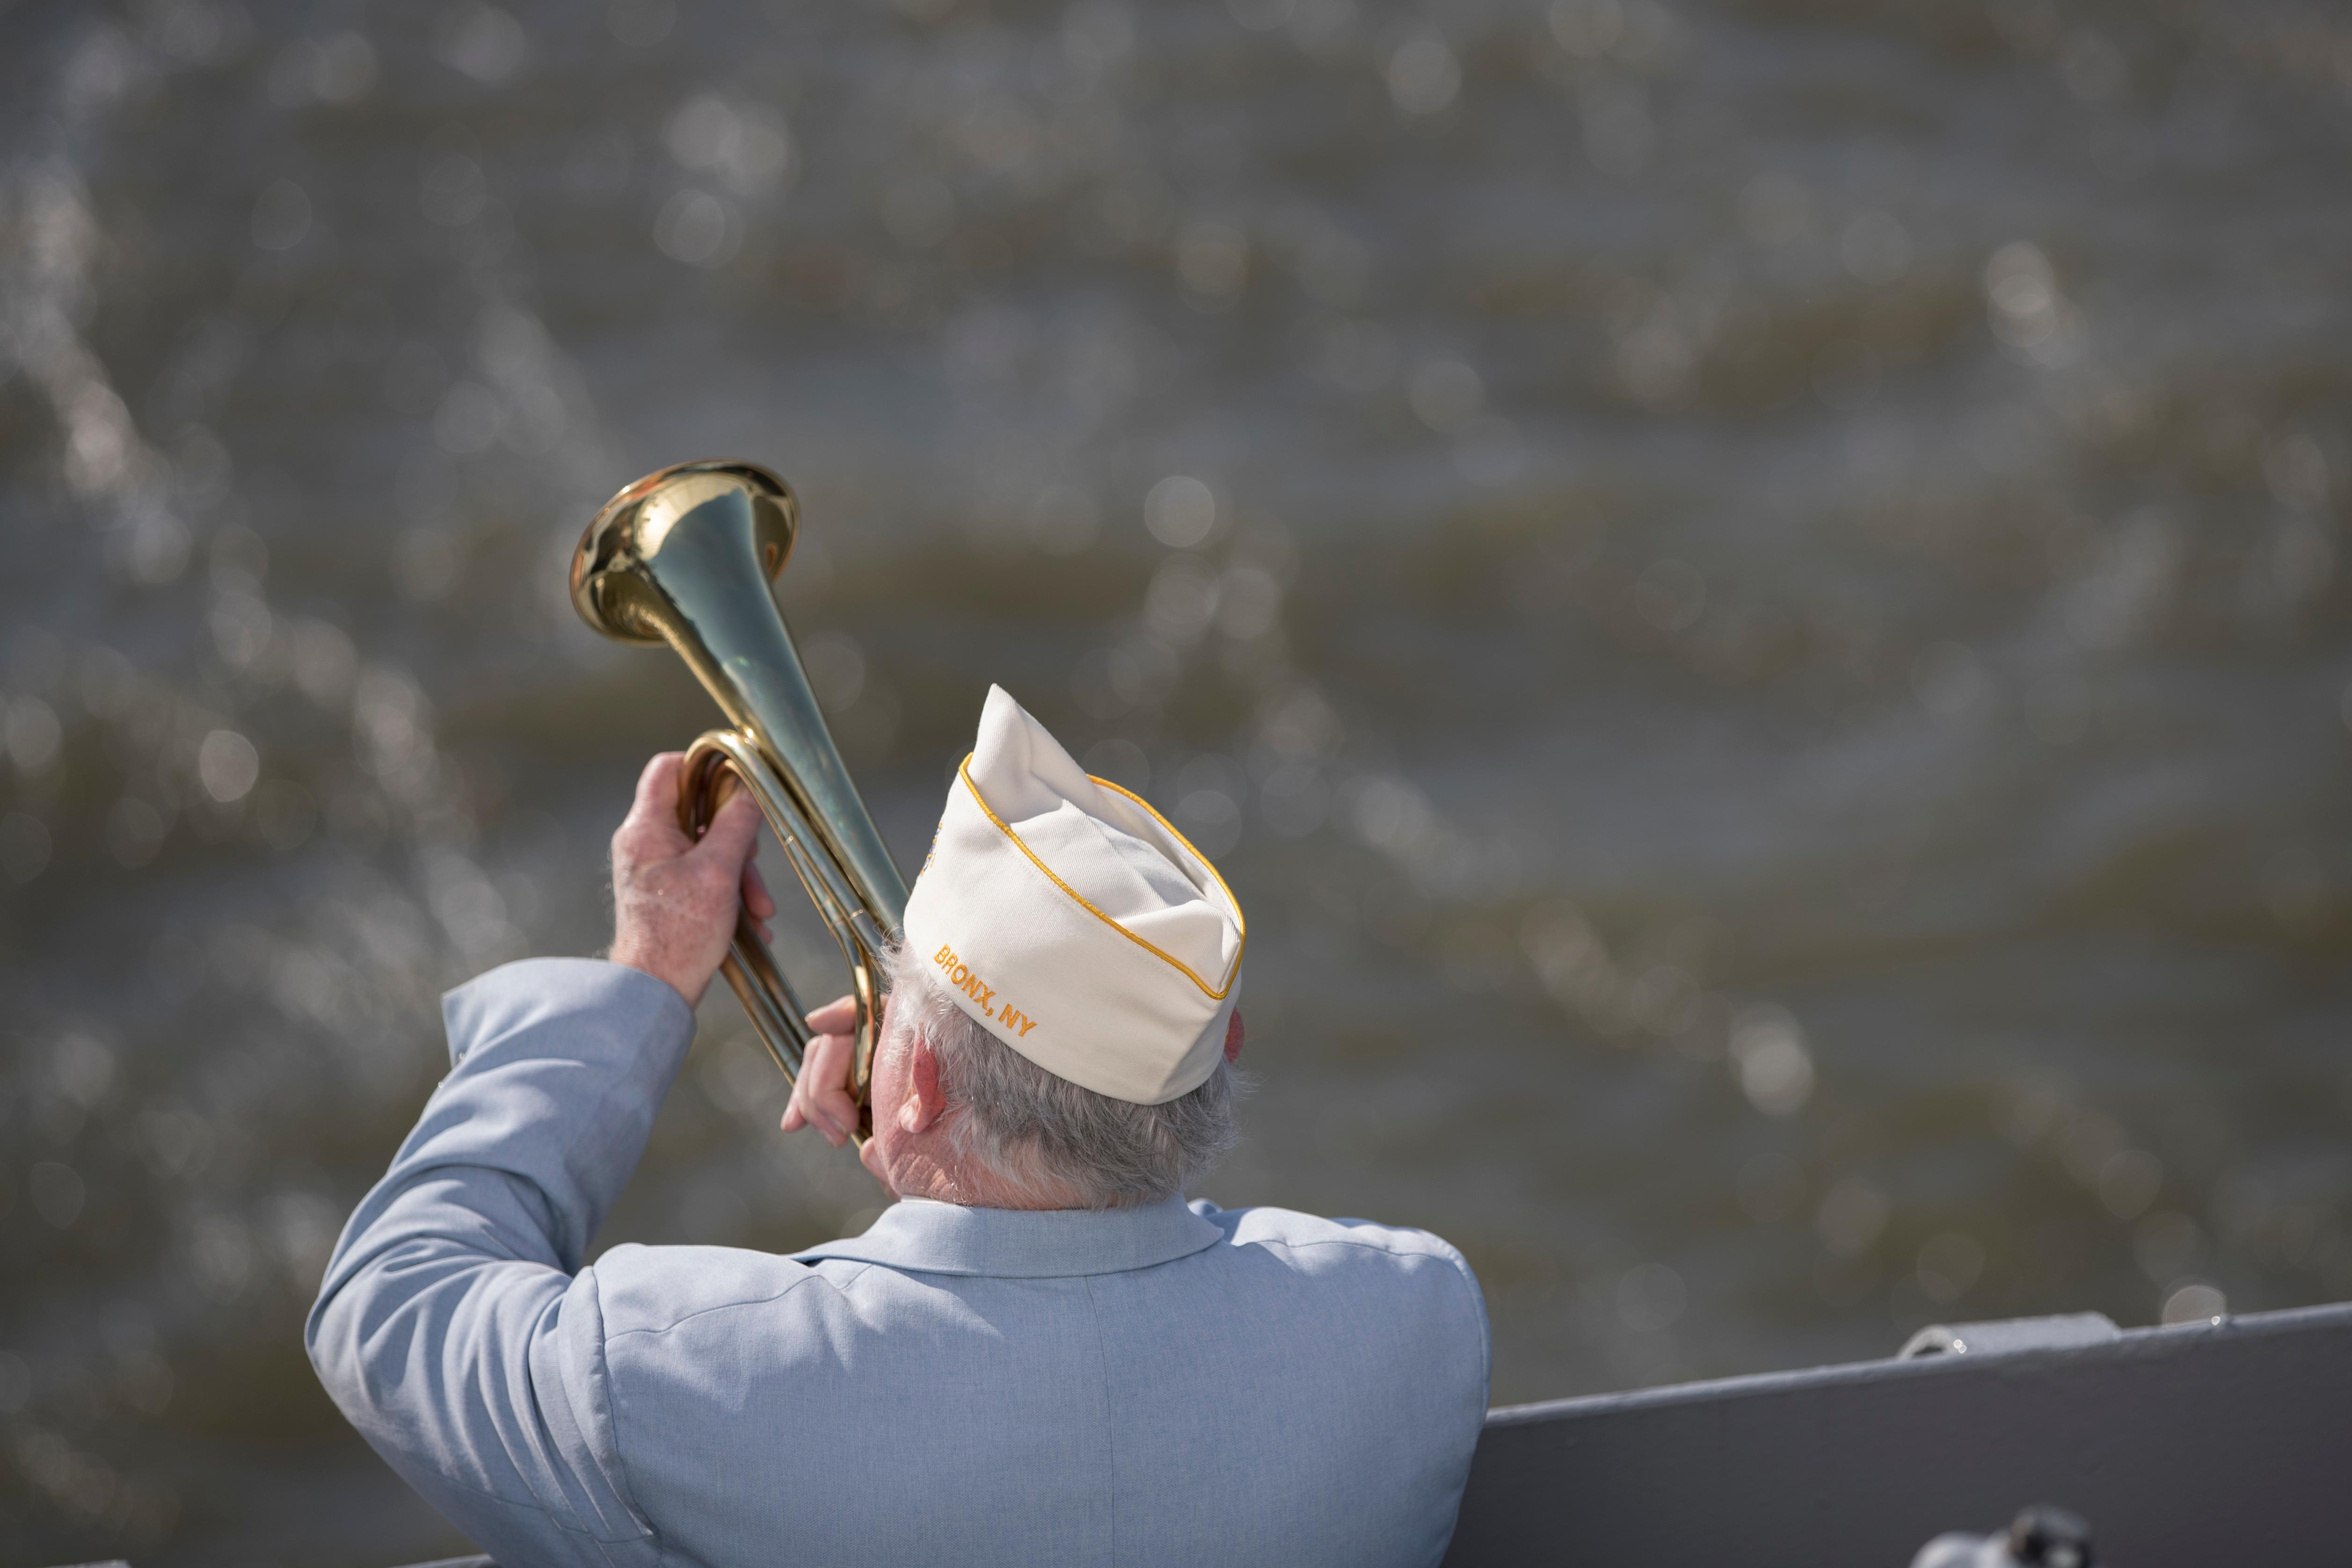 Vietnam veteran Jim Mullarkey plays taps on his bugle during a ceremony commemorating the 76th anniversary of the Dec. 7, 1941 Japanese attack on Pearl Harbor, Thursday, Dec. 7, 2017, on board the Intrepid Sea, Air & Space Museum in New York. (AP Photo/Mary Altaffer)